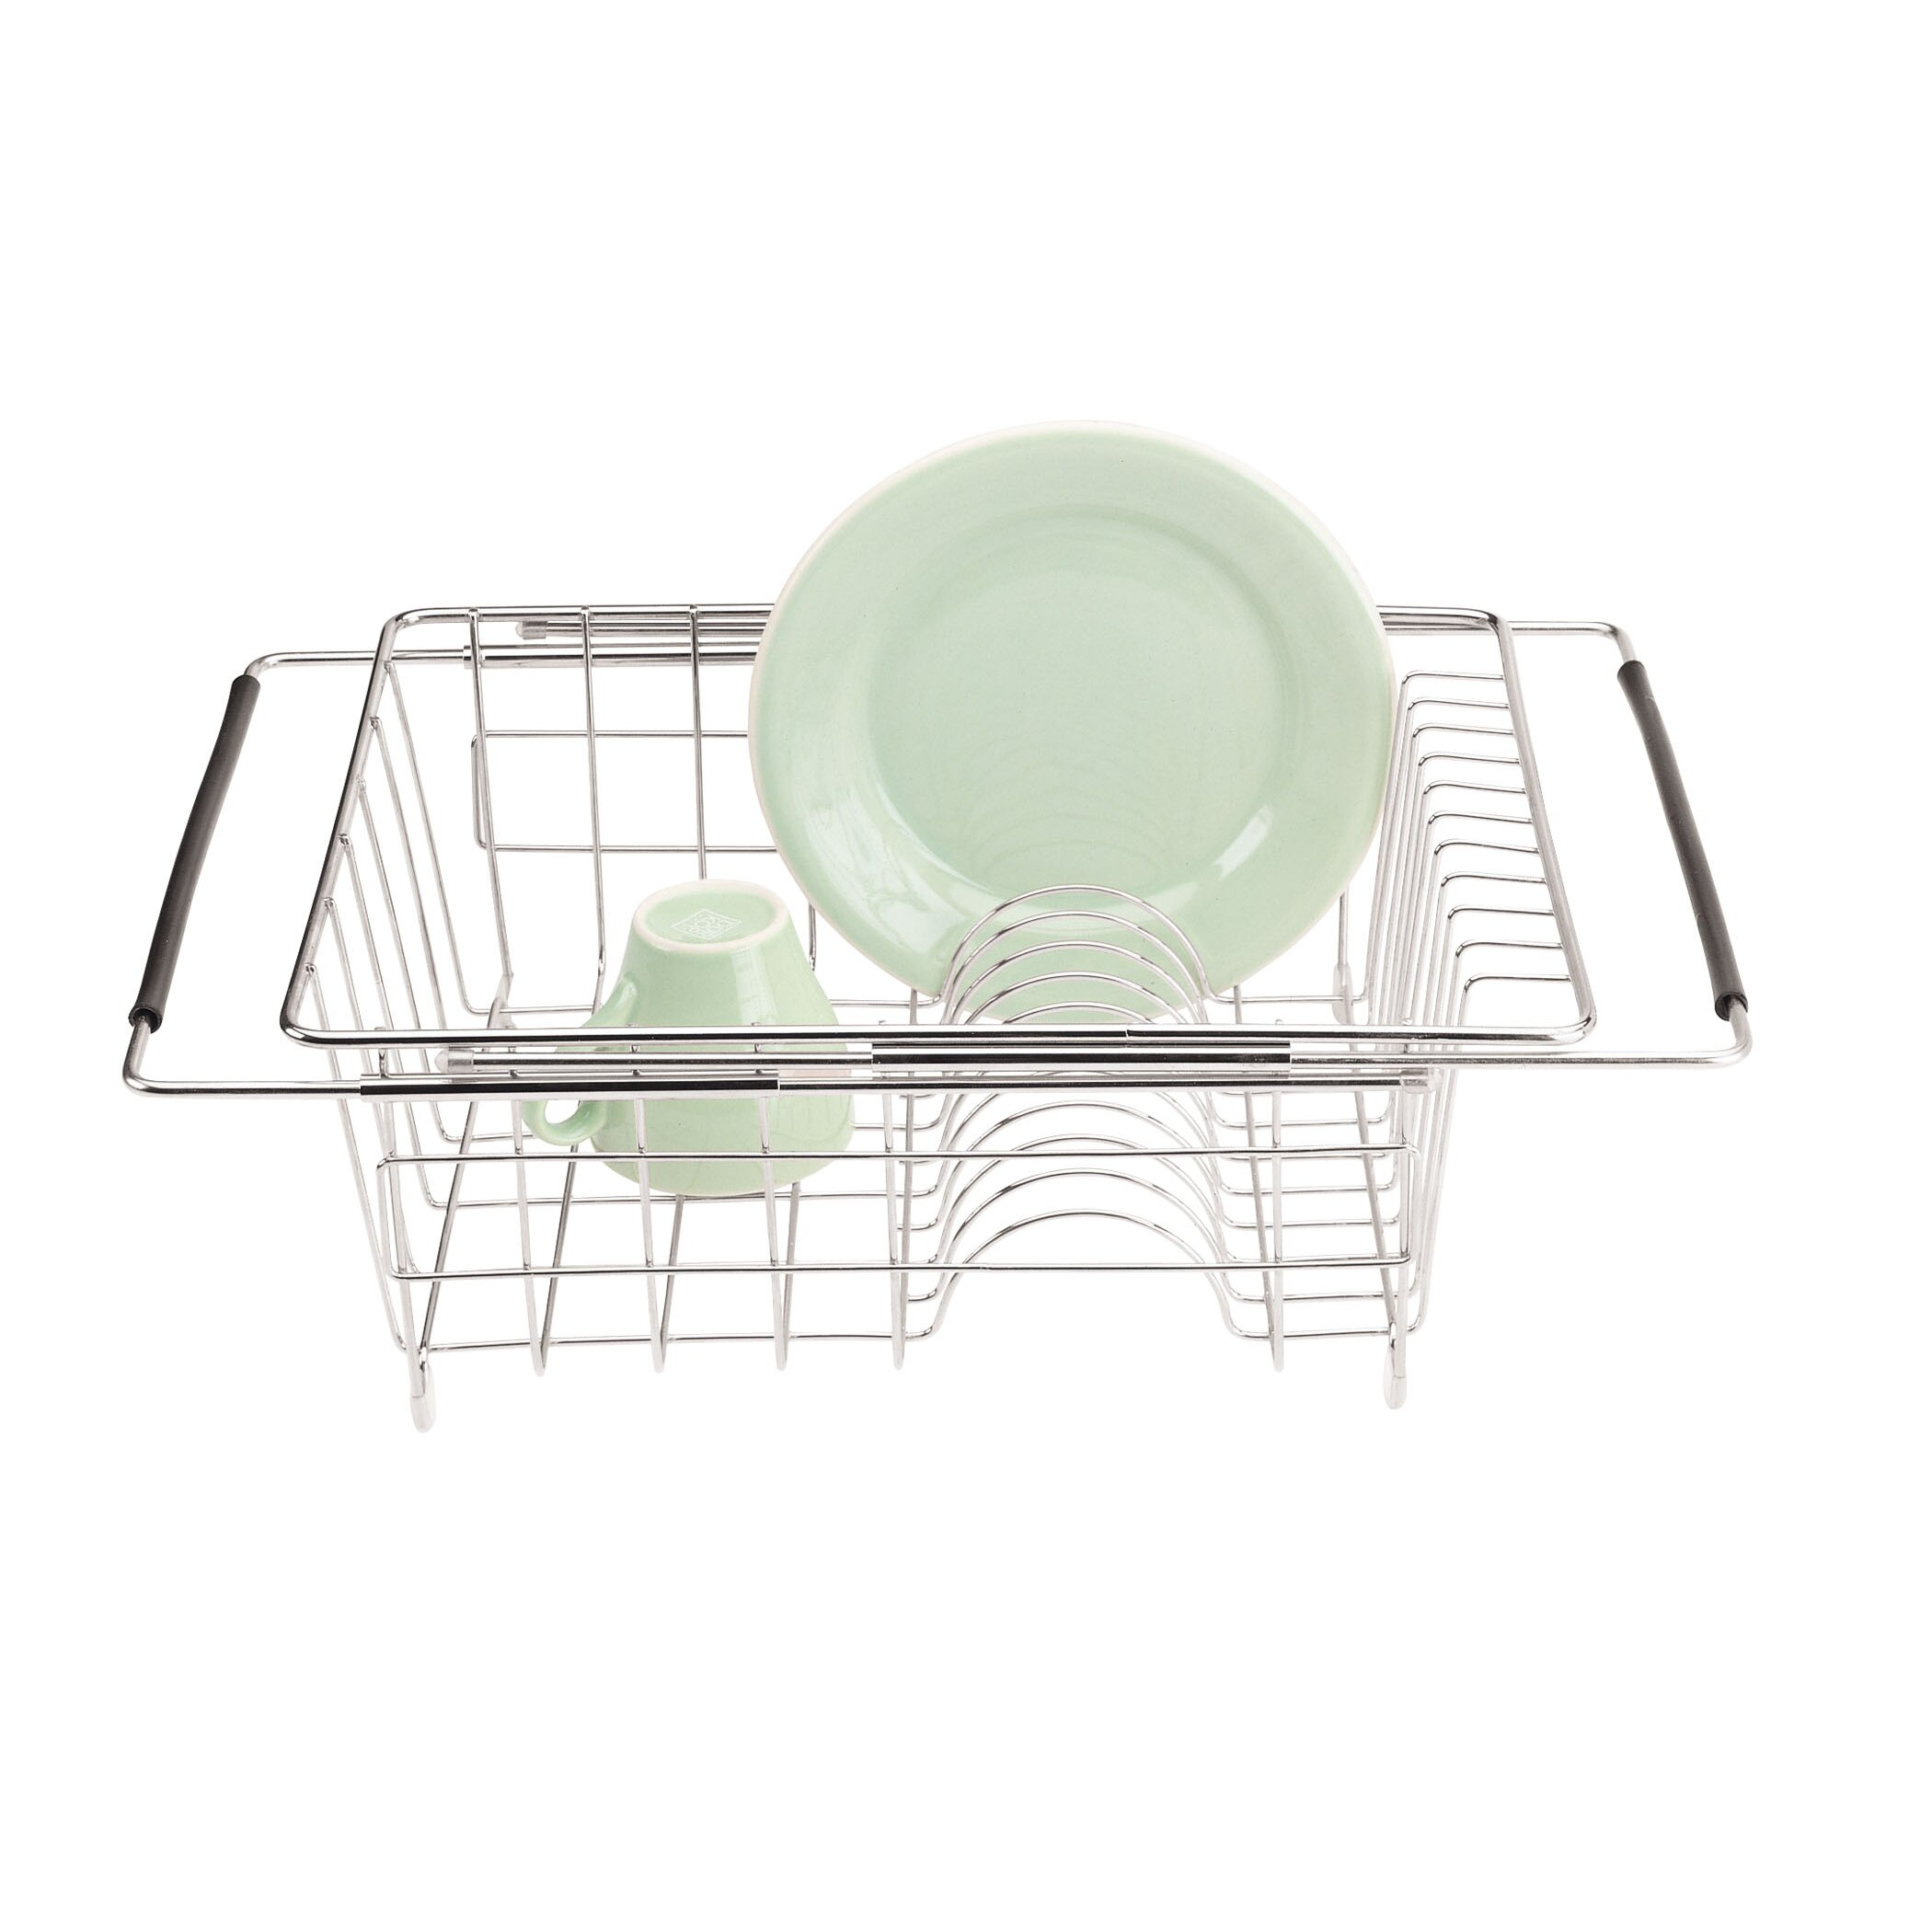 Kitchen Dish Rack Polder Products Llc Sink Dish Rack Reviews Wayfair